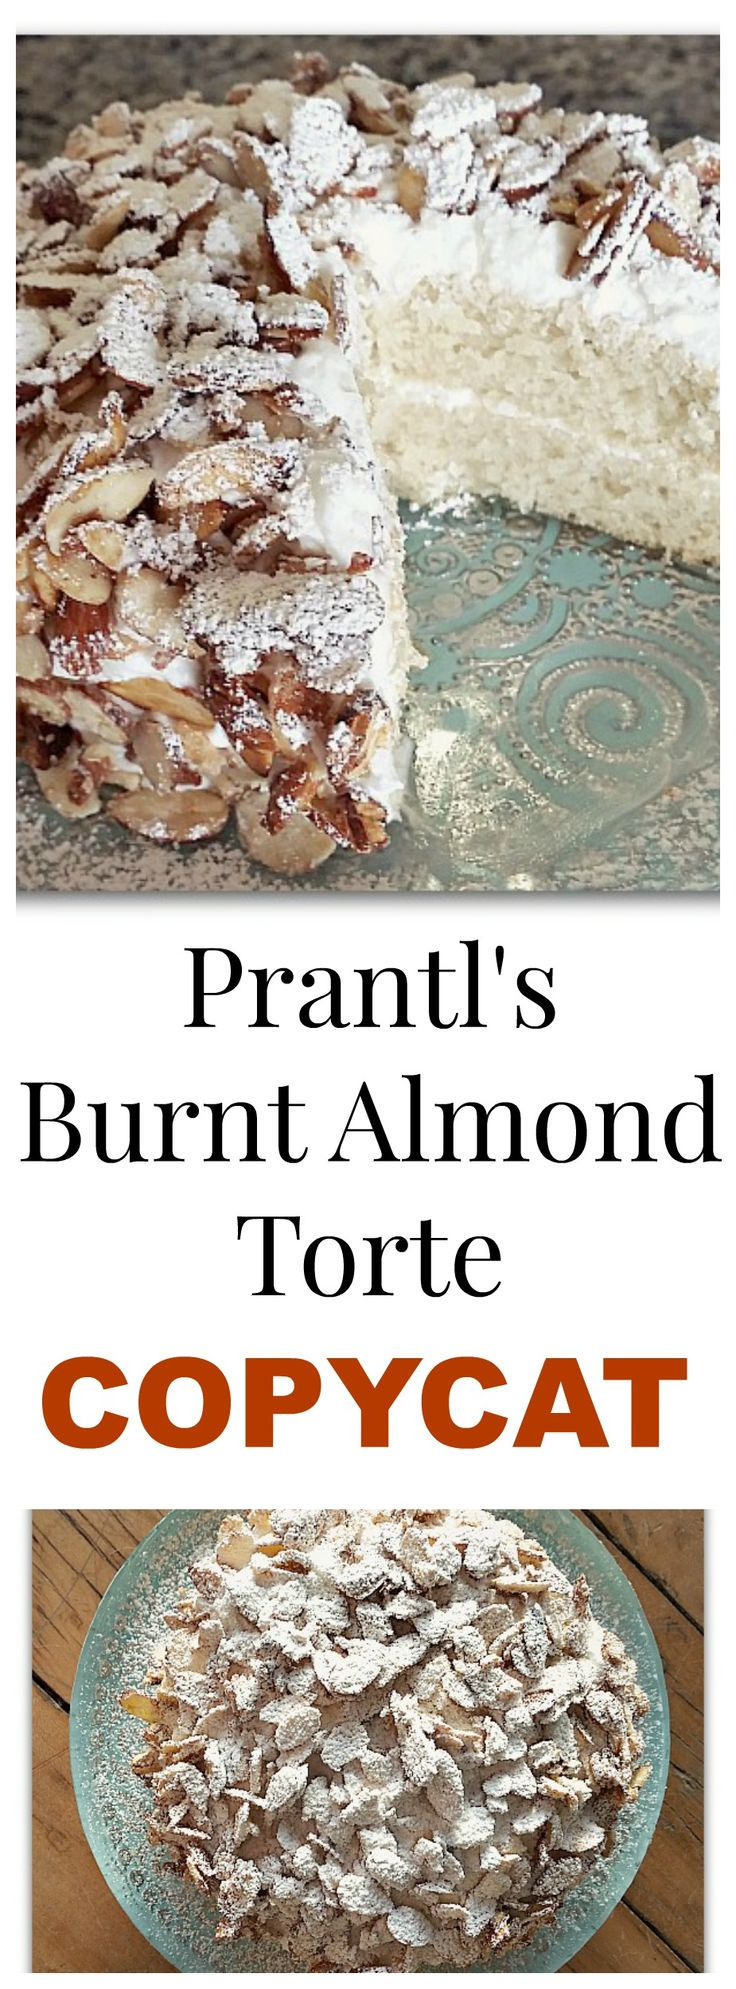 Pittsburgh's Prantl's Bakery Copycat - World Famous Burnt Almond Torte. You'll be surprised how easy this recipe is! It really is the best tasting cake ever...